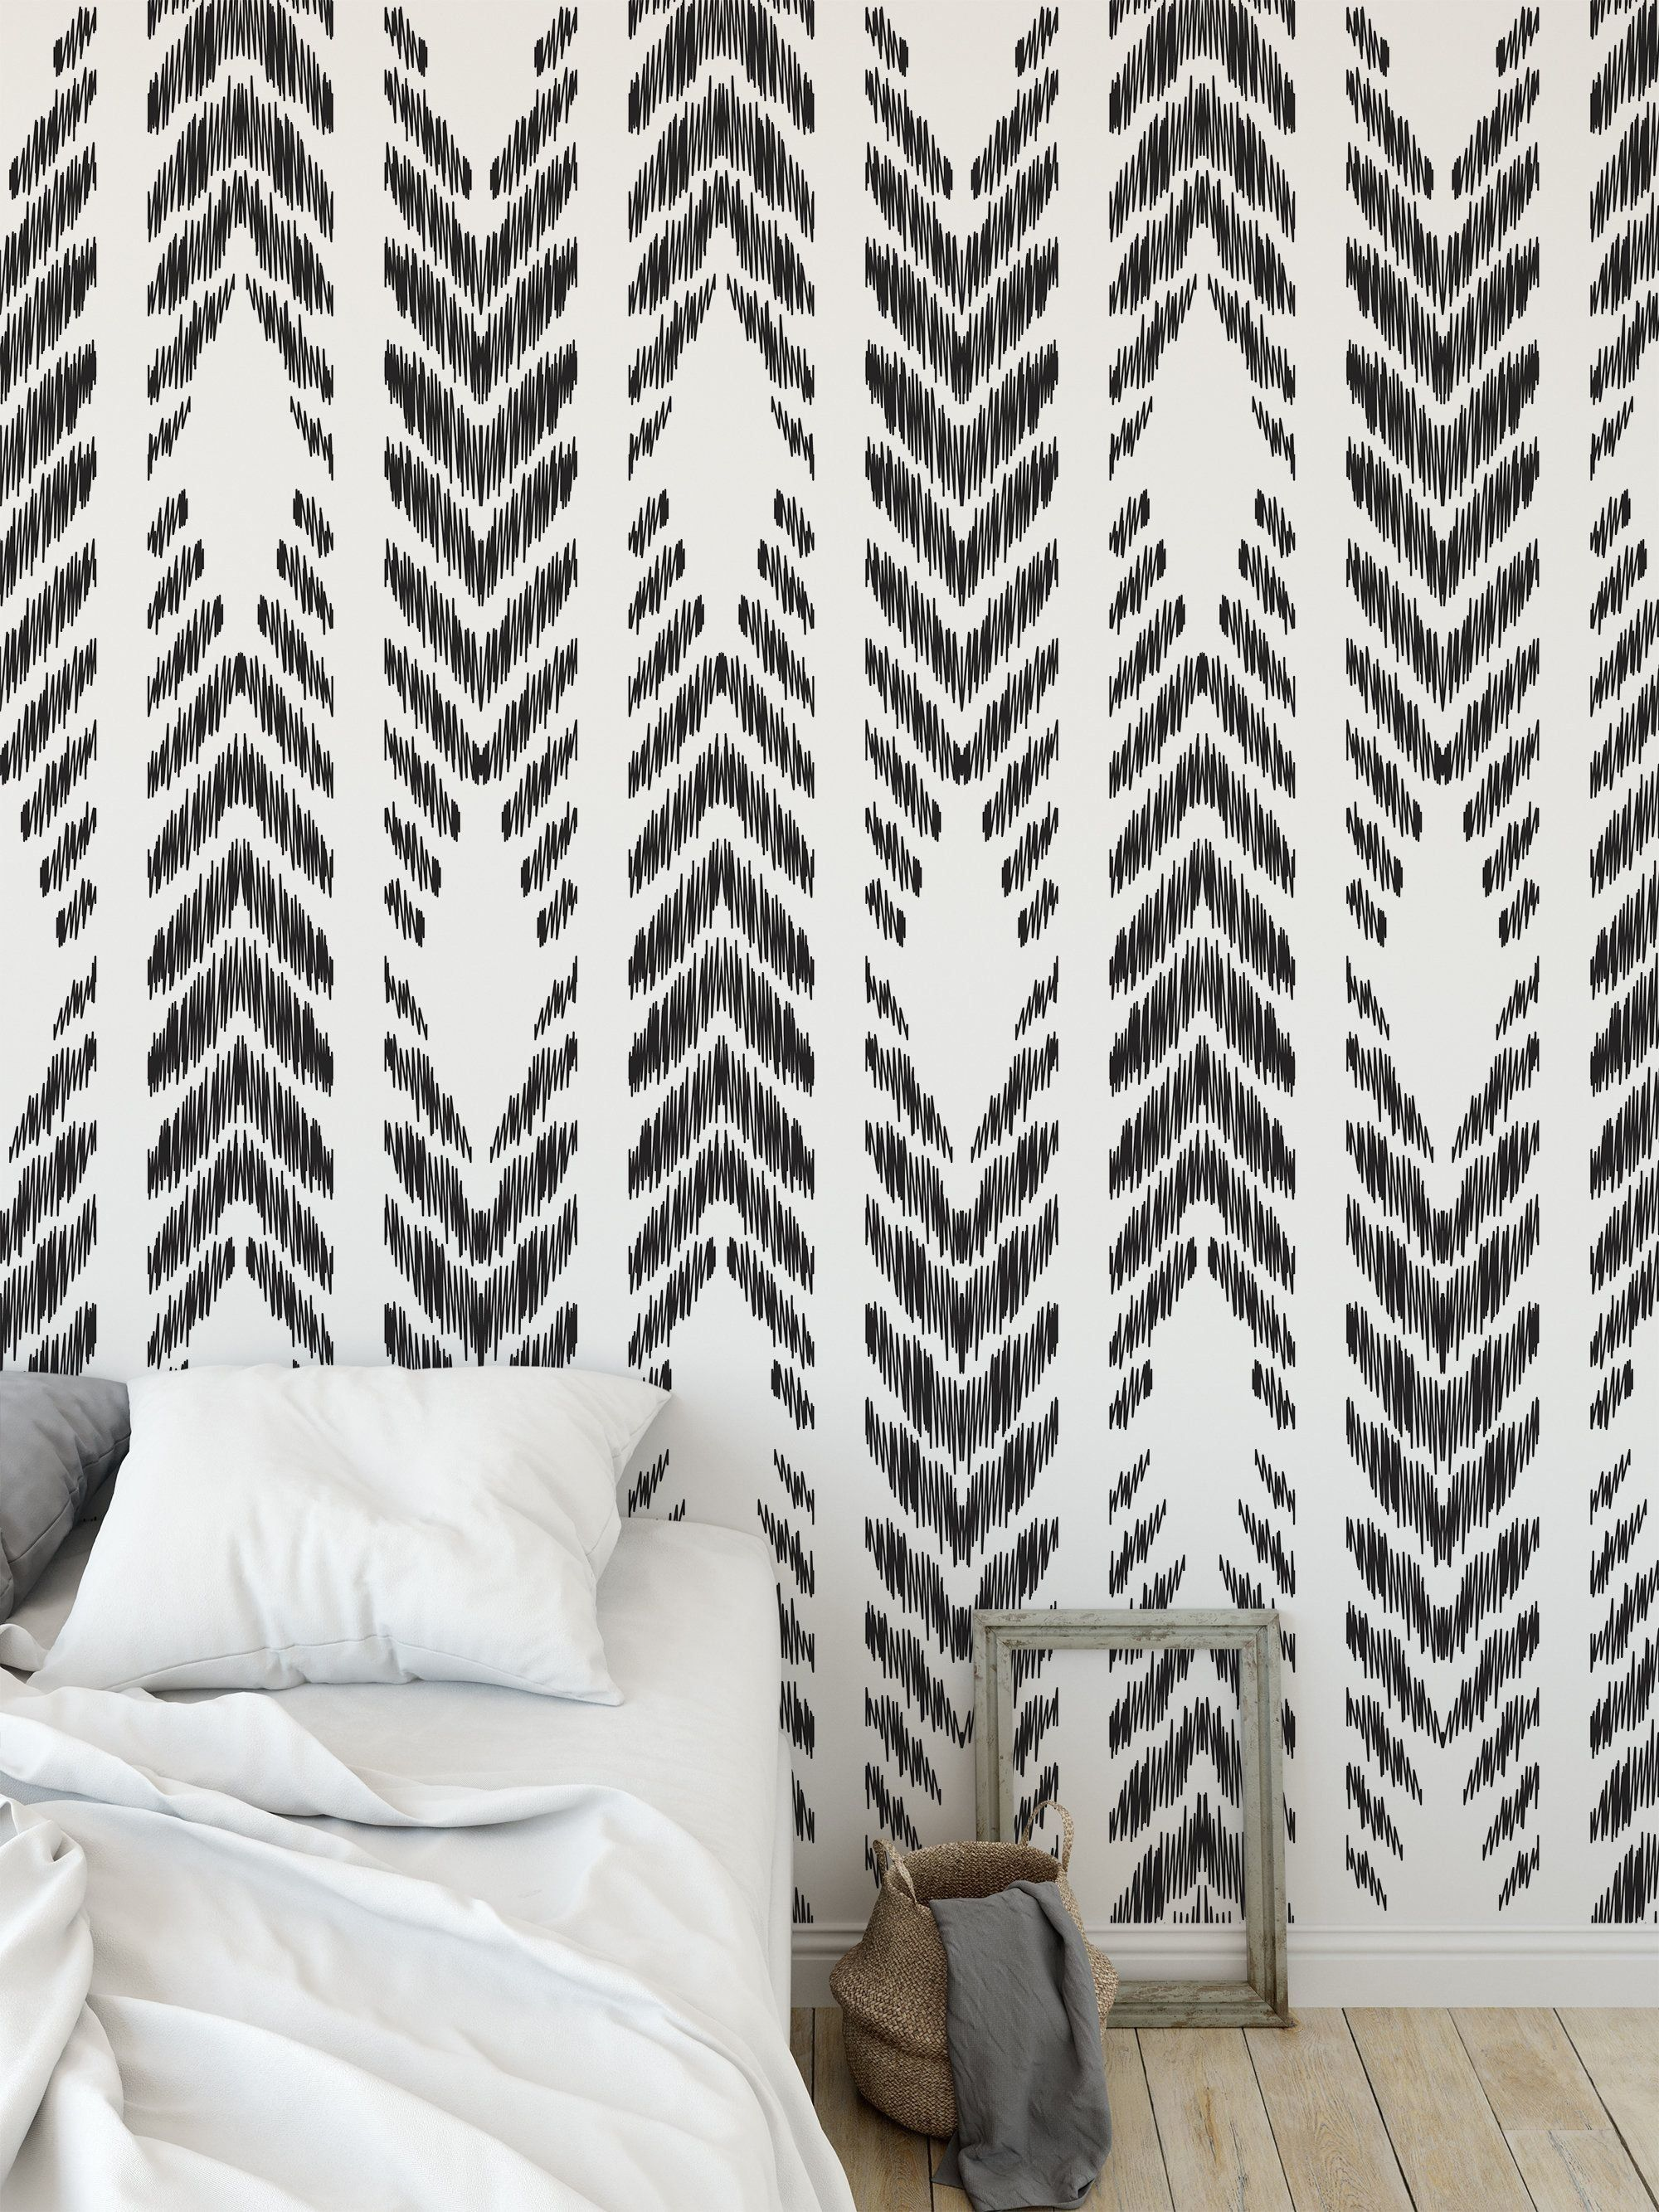 High Quality Repositionable Removable Self Adhesive Peel And Stick Wallpaper Herringbone Tribal Pattern In Peel And Stick Wallpaper Vinyl Wallpaper Home Decor